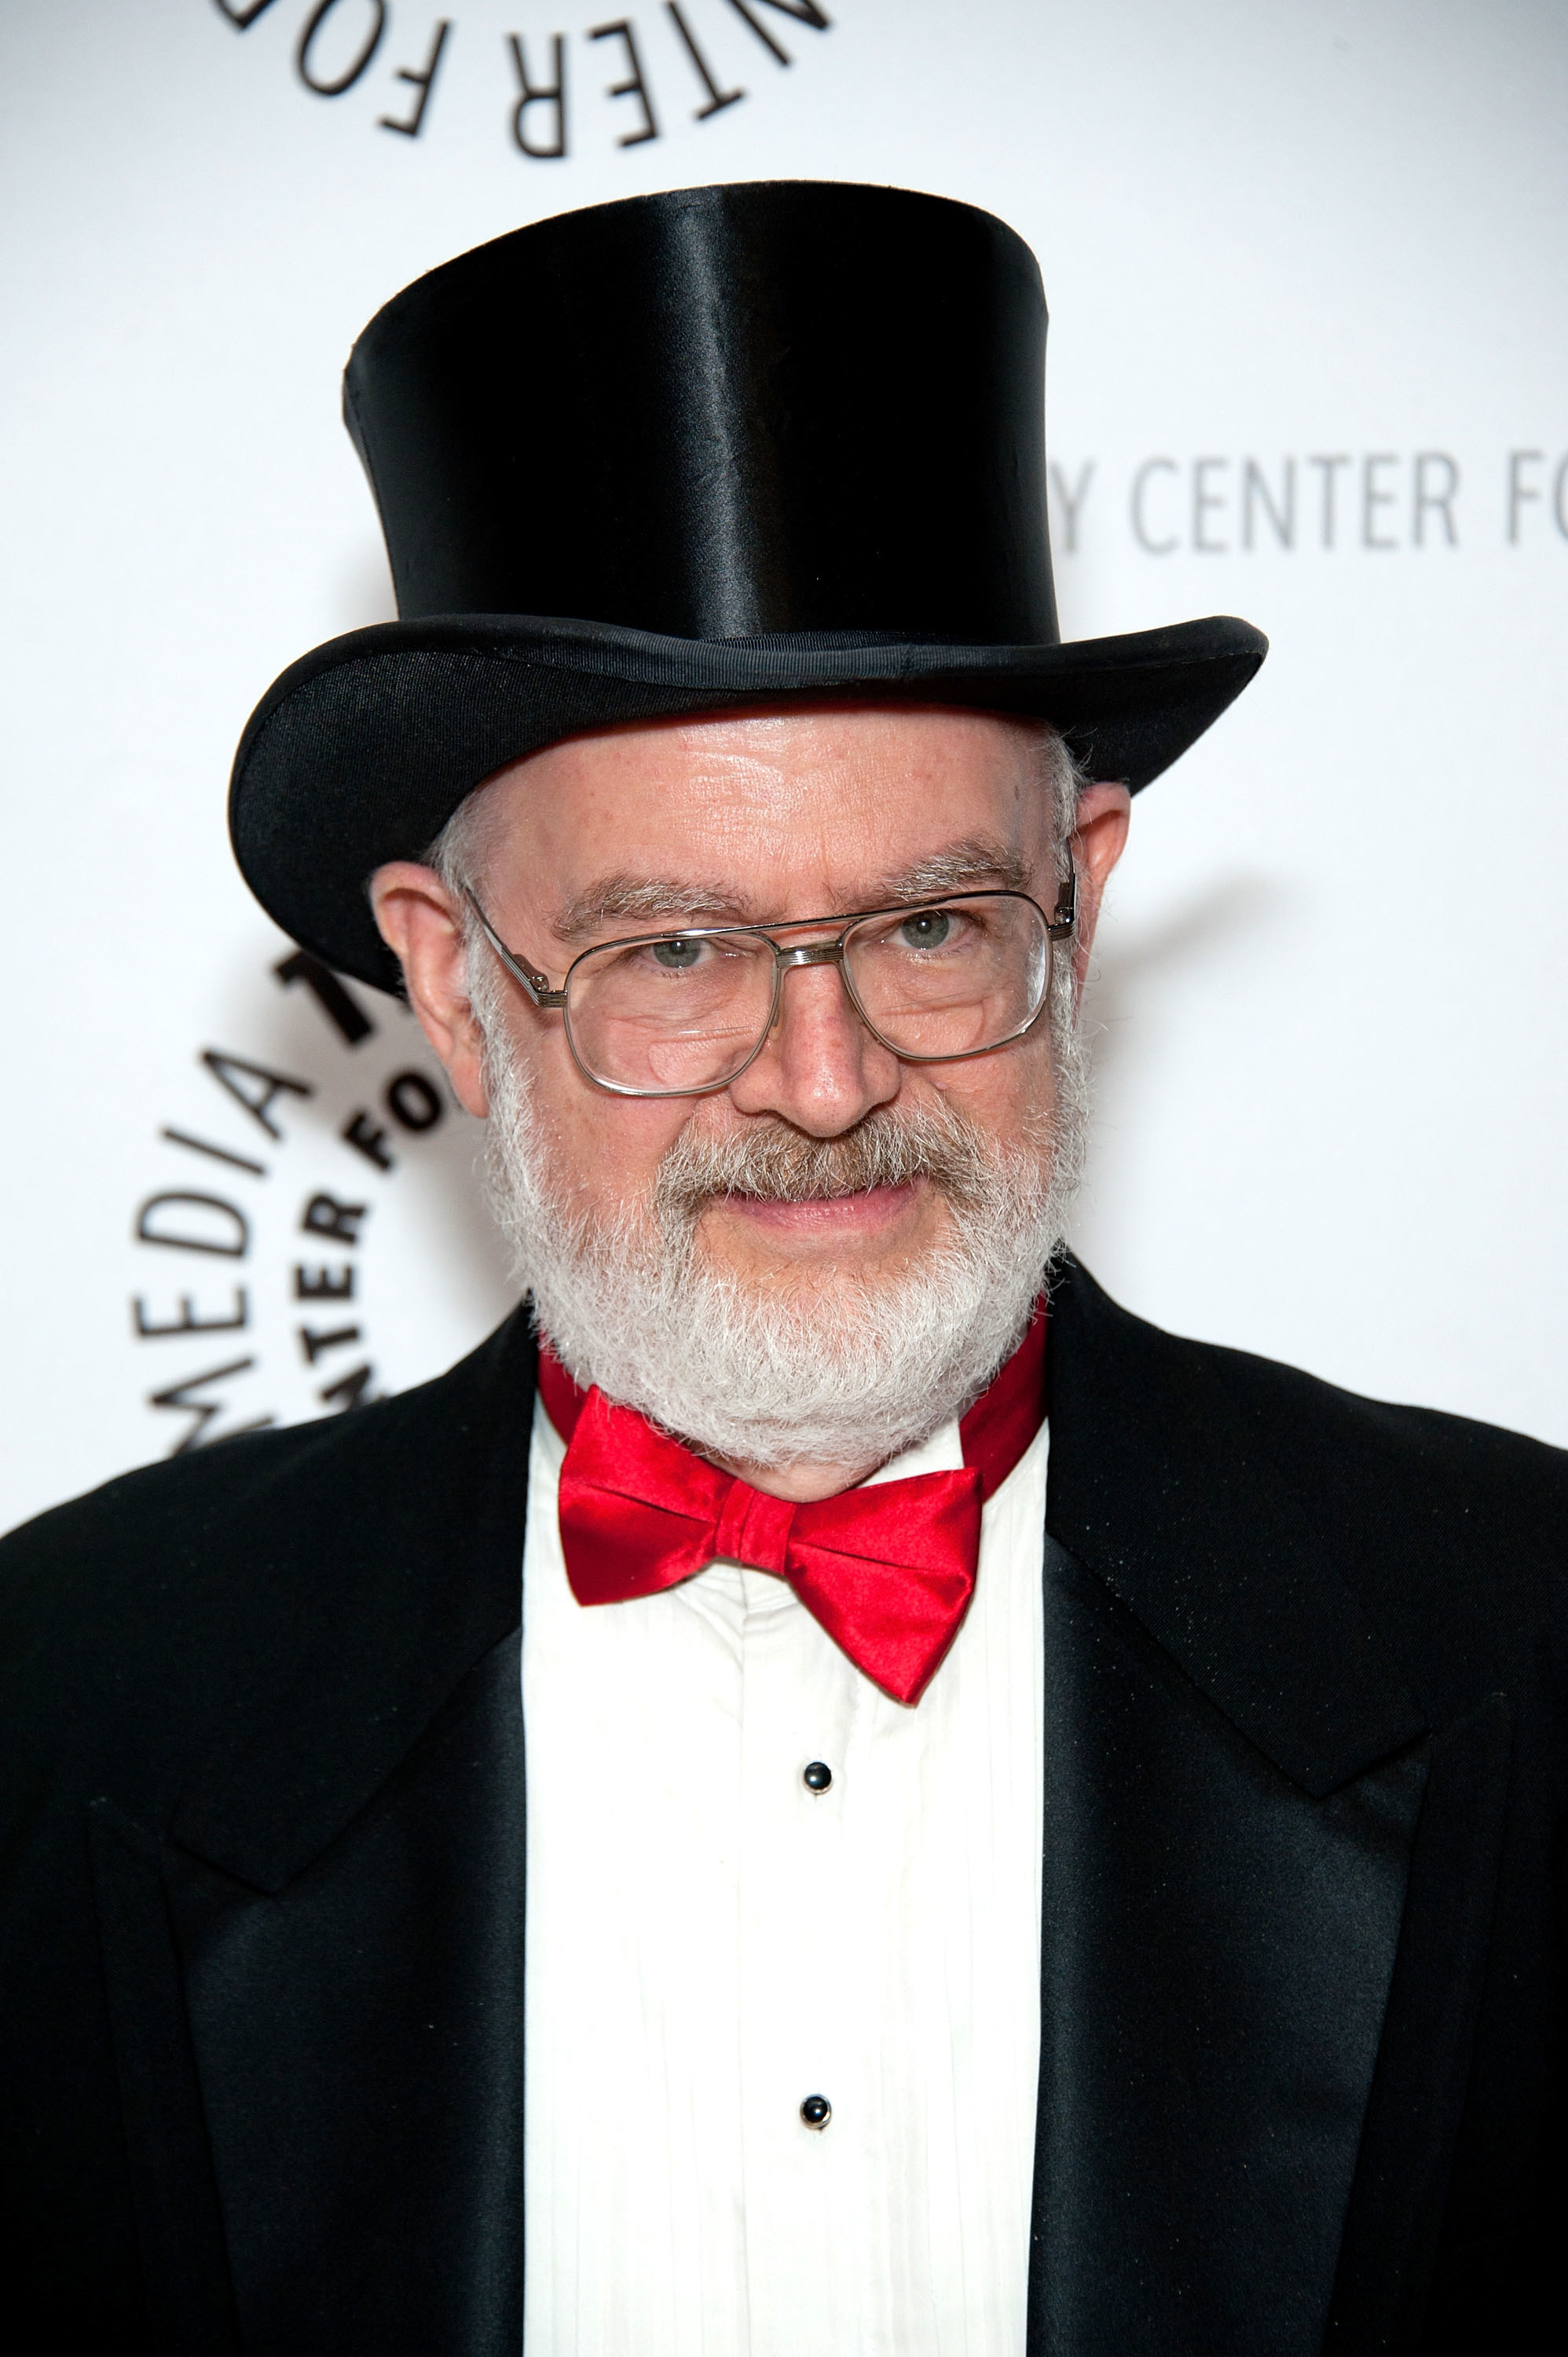 Photo of Dr. Demento in a classic suit and top hat